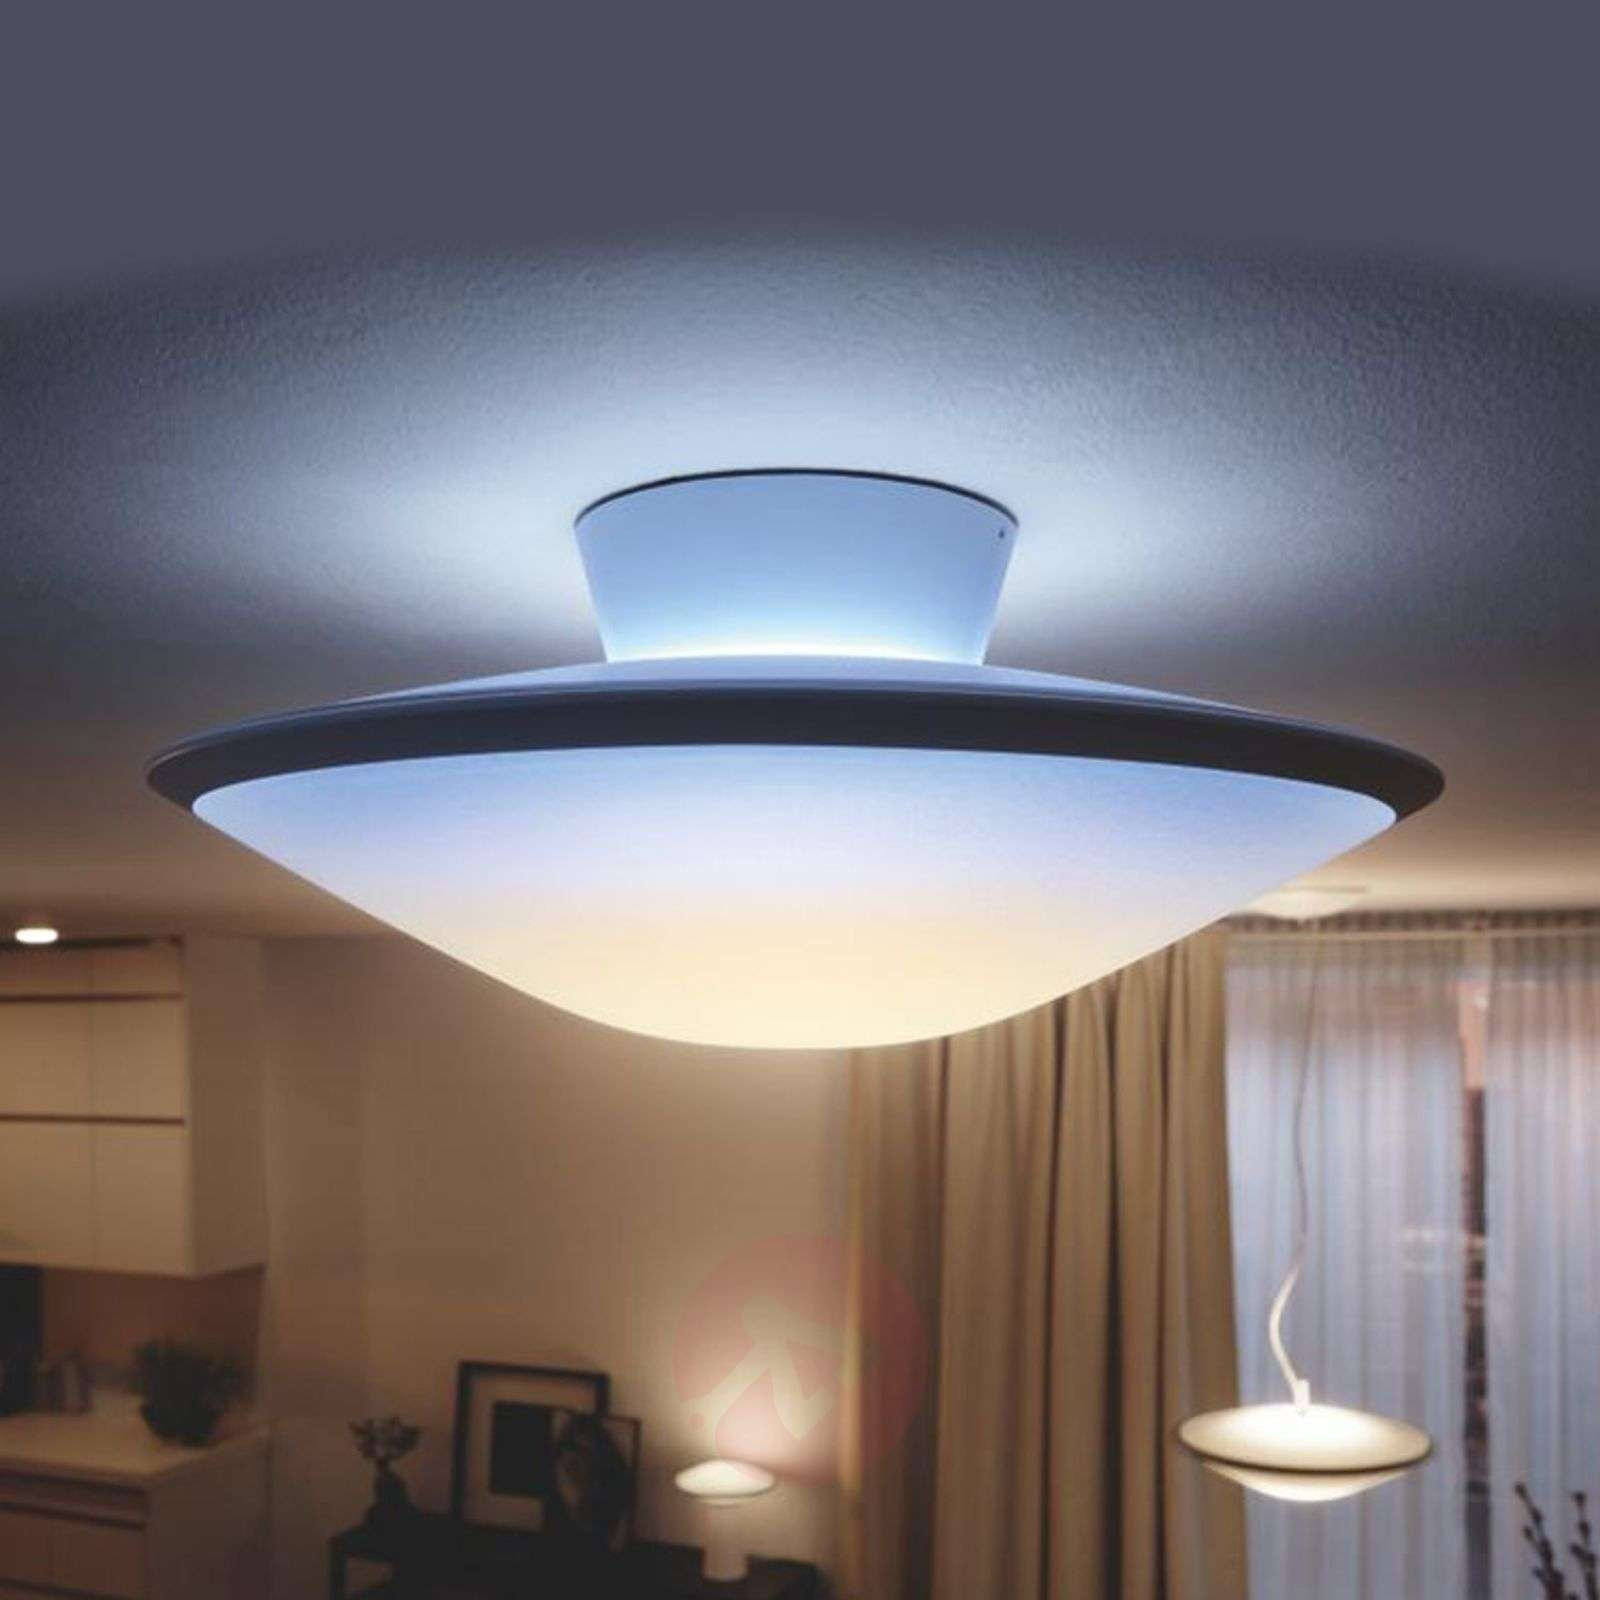 Philips Hue Phoenix Ceiling Light White Ambiance Lights Ie